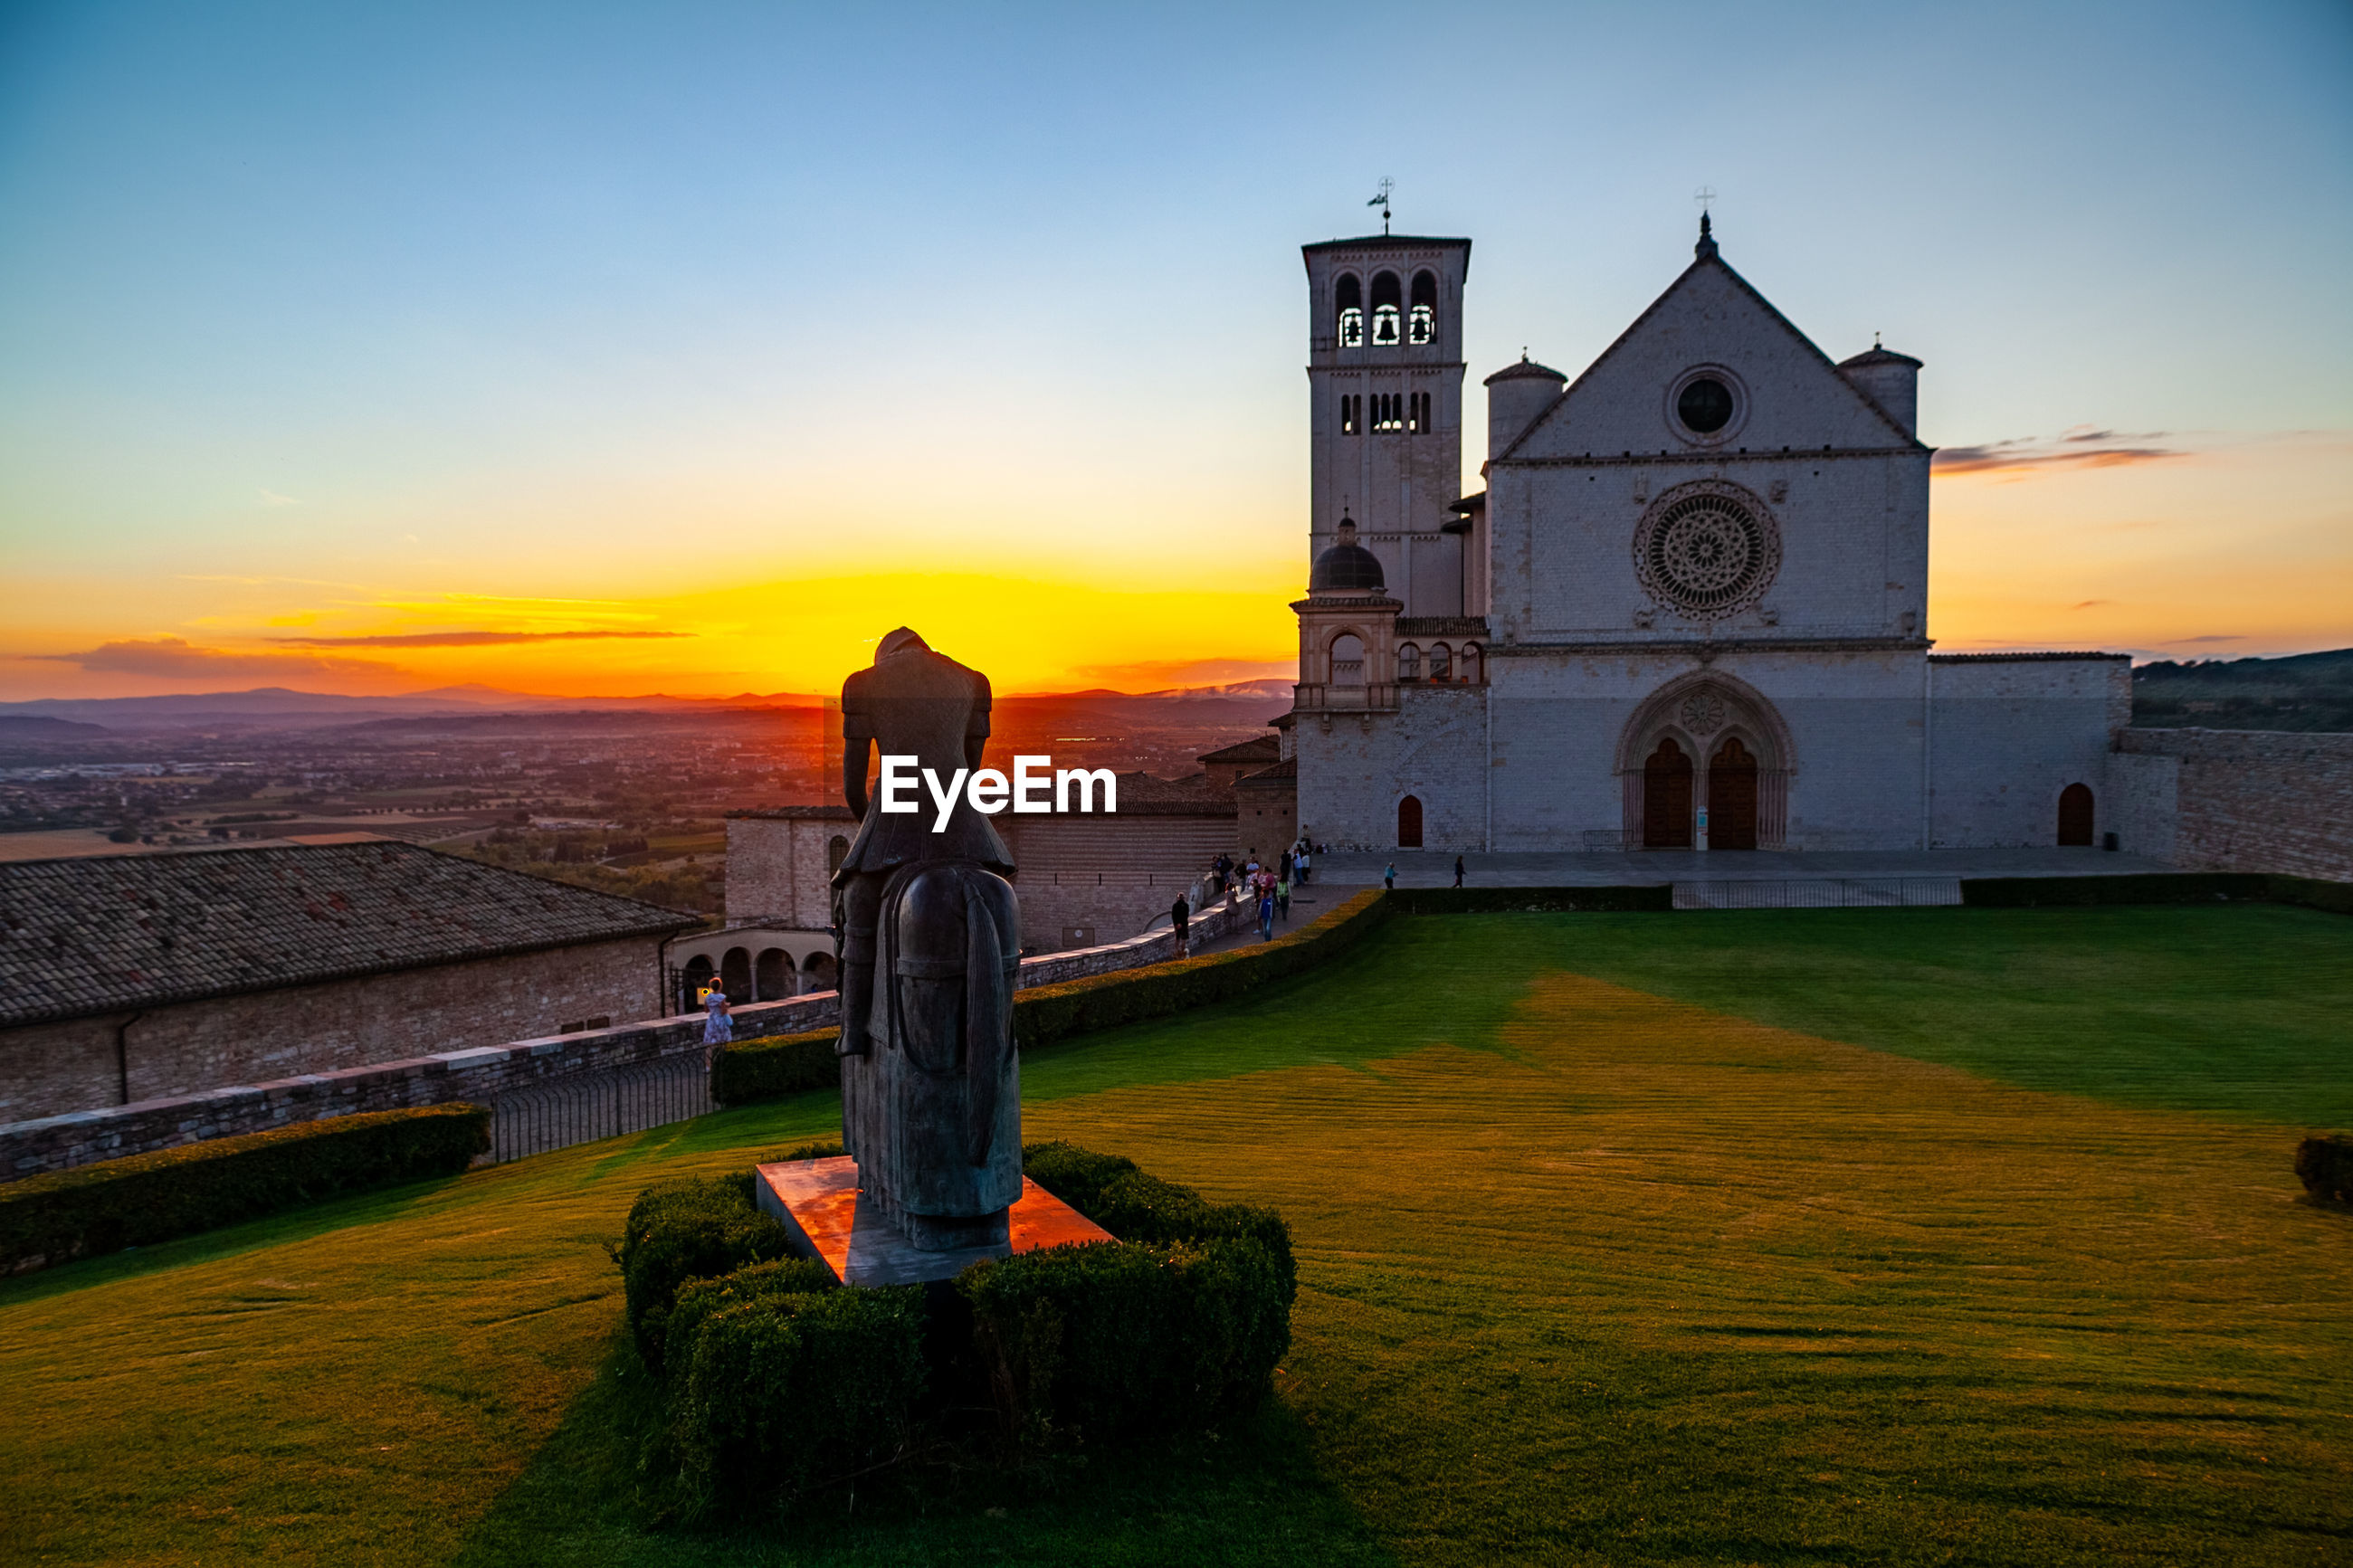 Scenic view of saint francis basilica in assisi, umbria, italy, at sunset